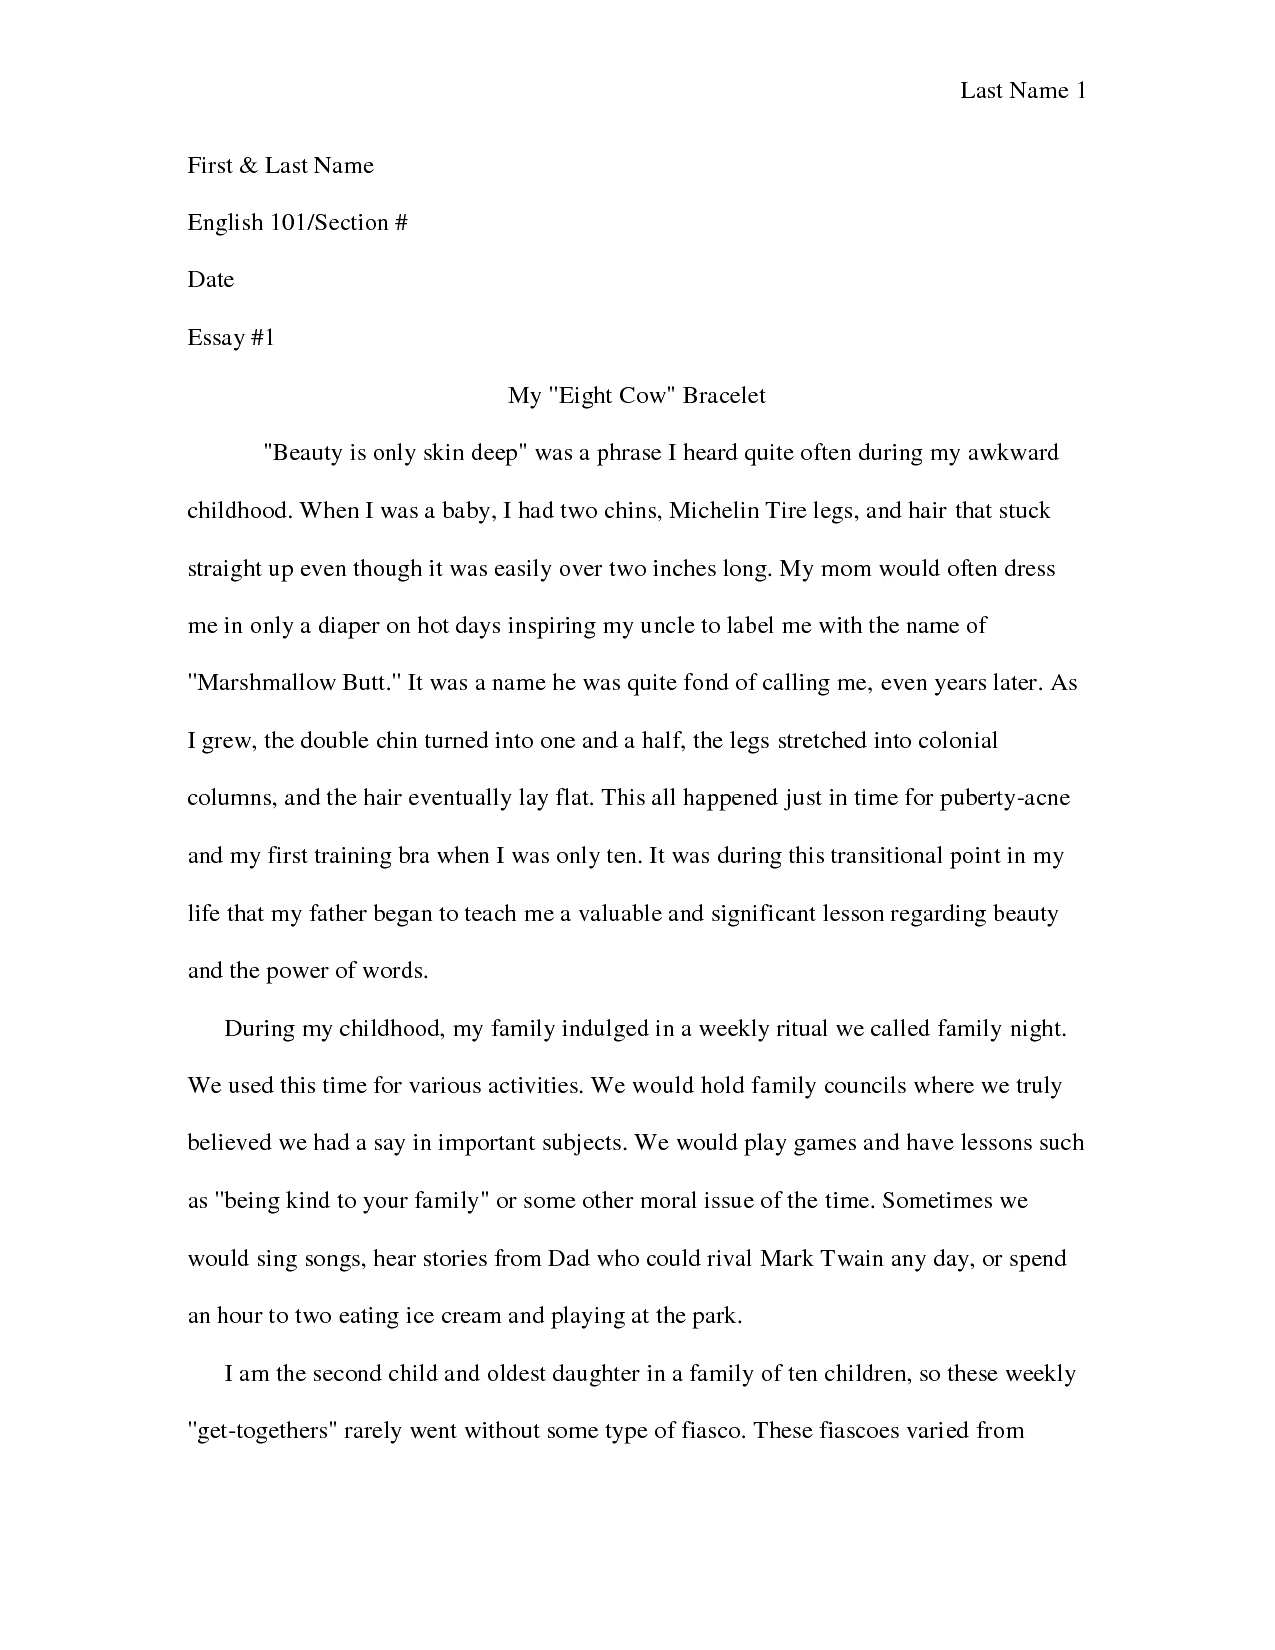 research paper examples of essay sample pdf about